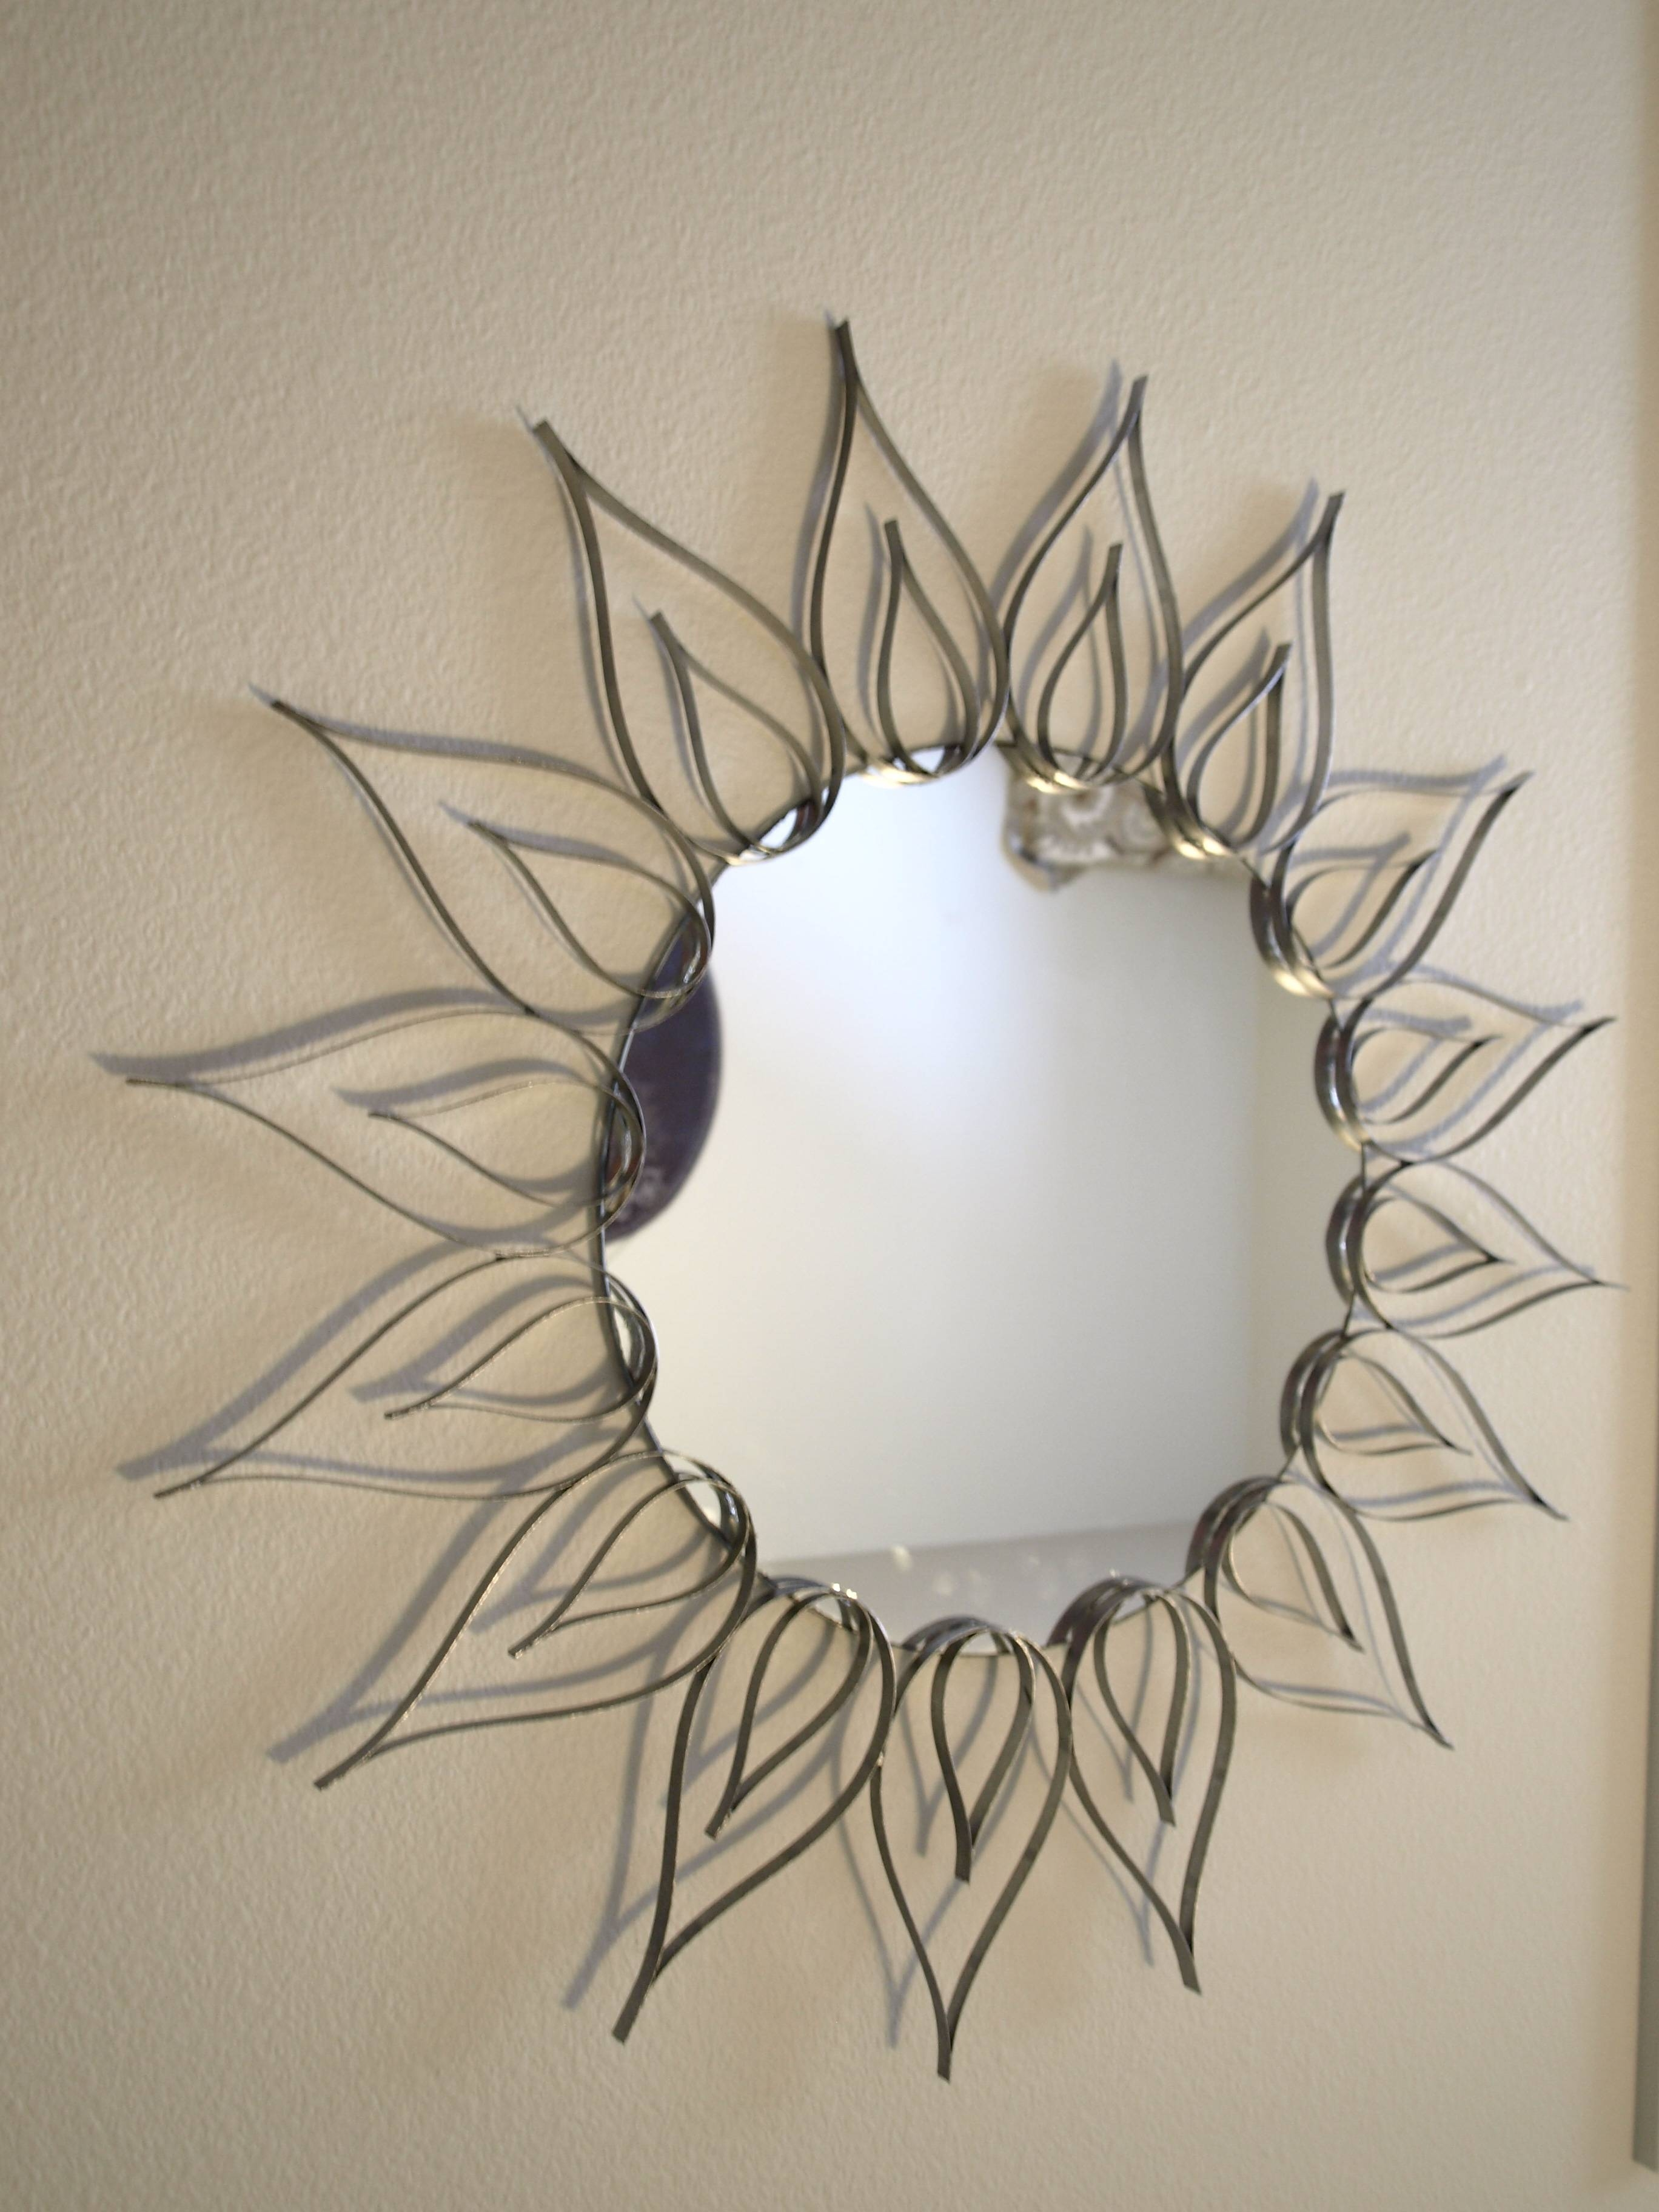 Designs Of Wall Mirror Decor | The Latest Home Decor Ideas throughout Small Decorative Mirrors (Image 8 of 25)